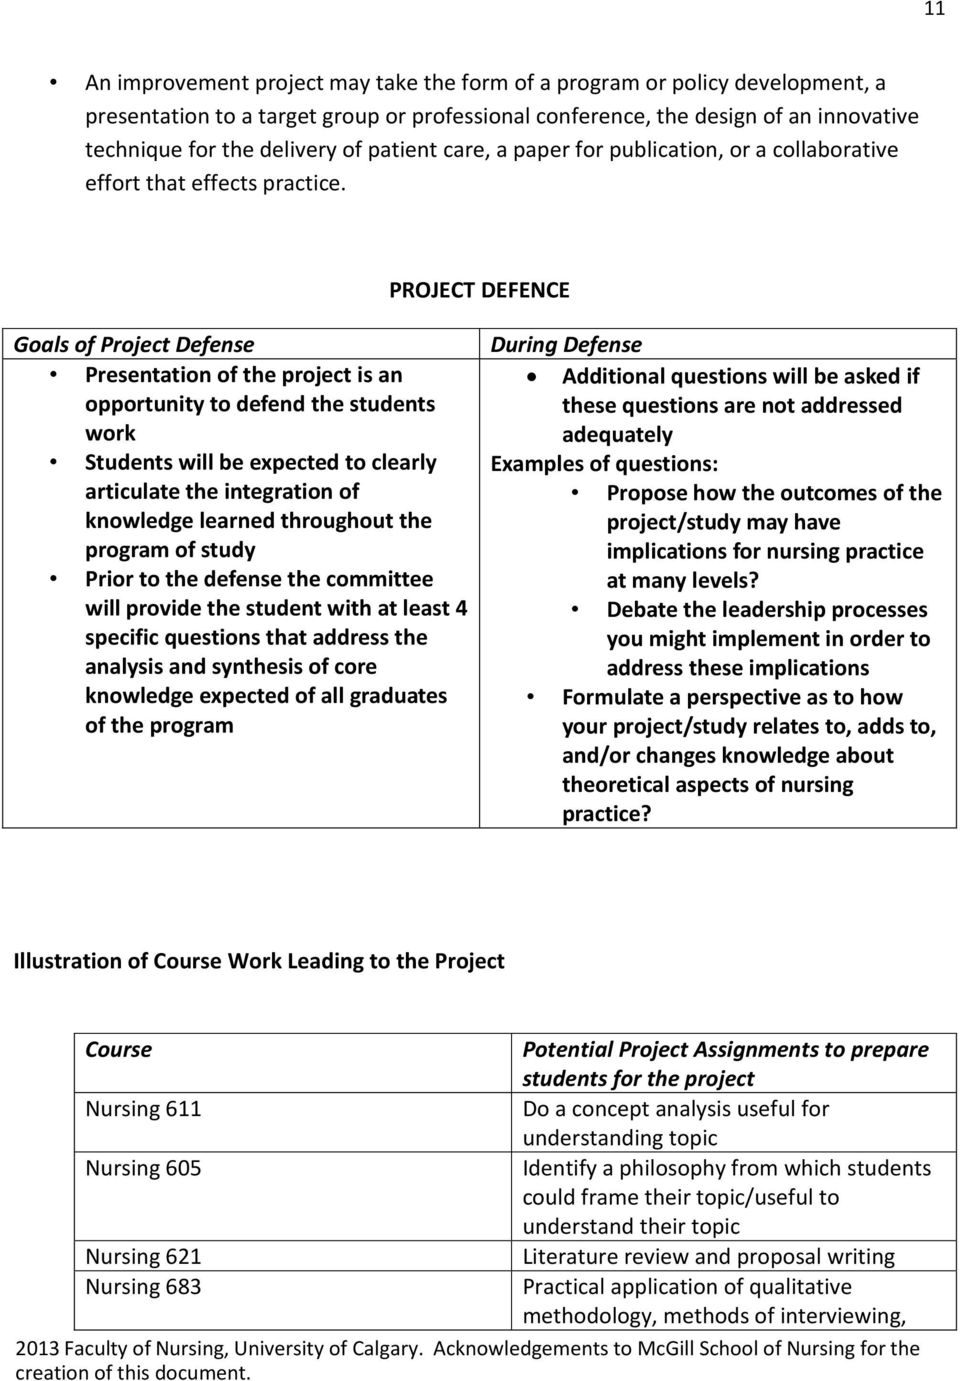 PROJECT DEFENCE Goals of Project Defense Presentation of the project is an opportunity to defend the students work Students will be expected to clearly articulate the integration of knowledge learned